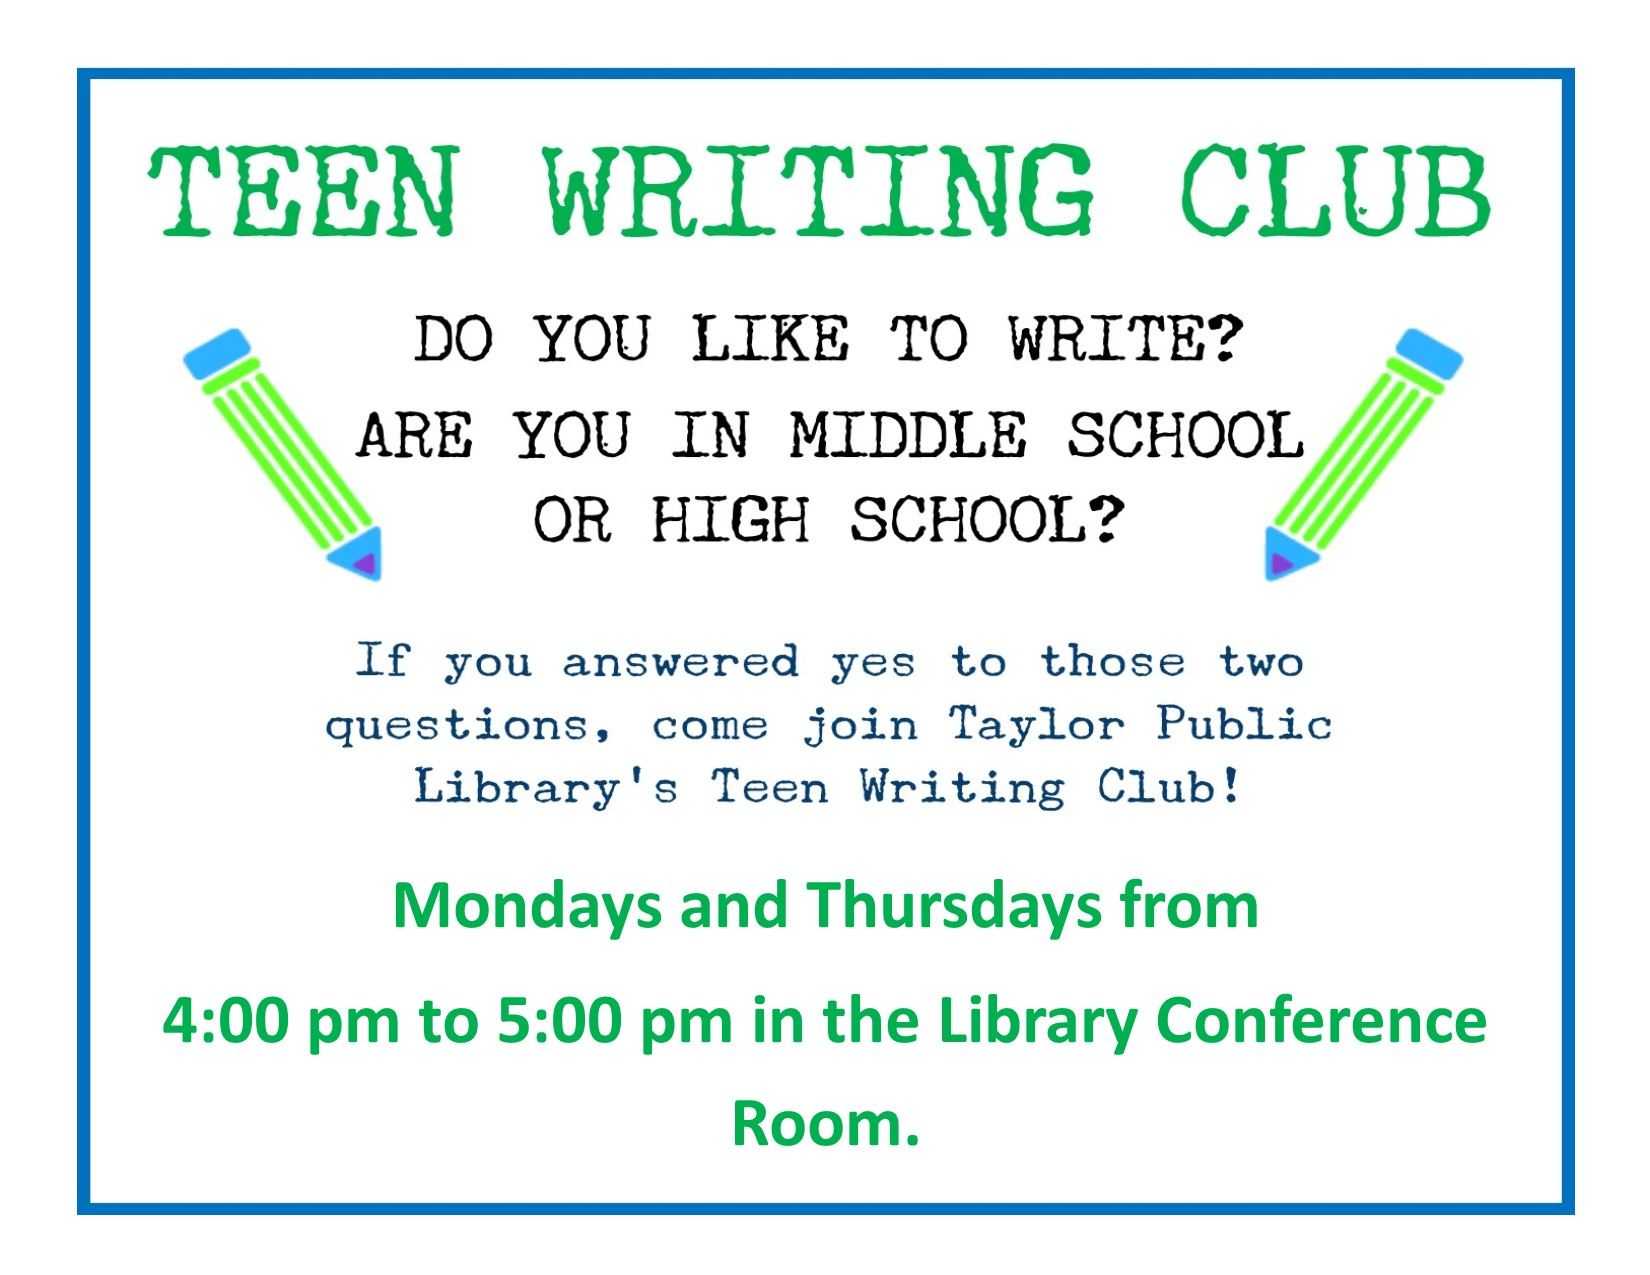 Teen Writing Club Sign Aug 2018